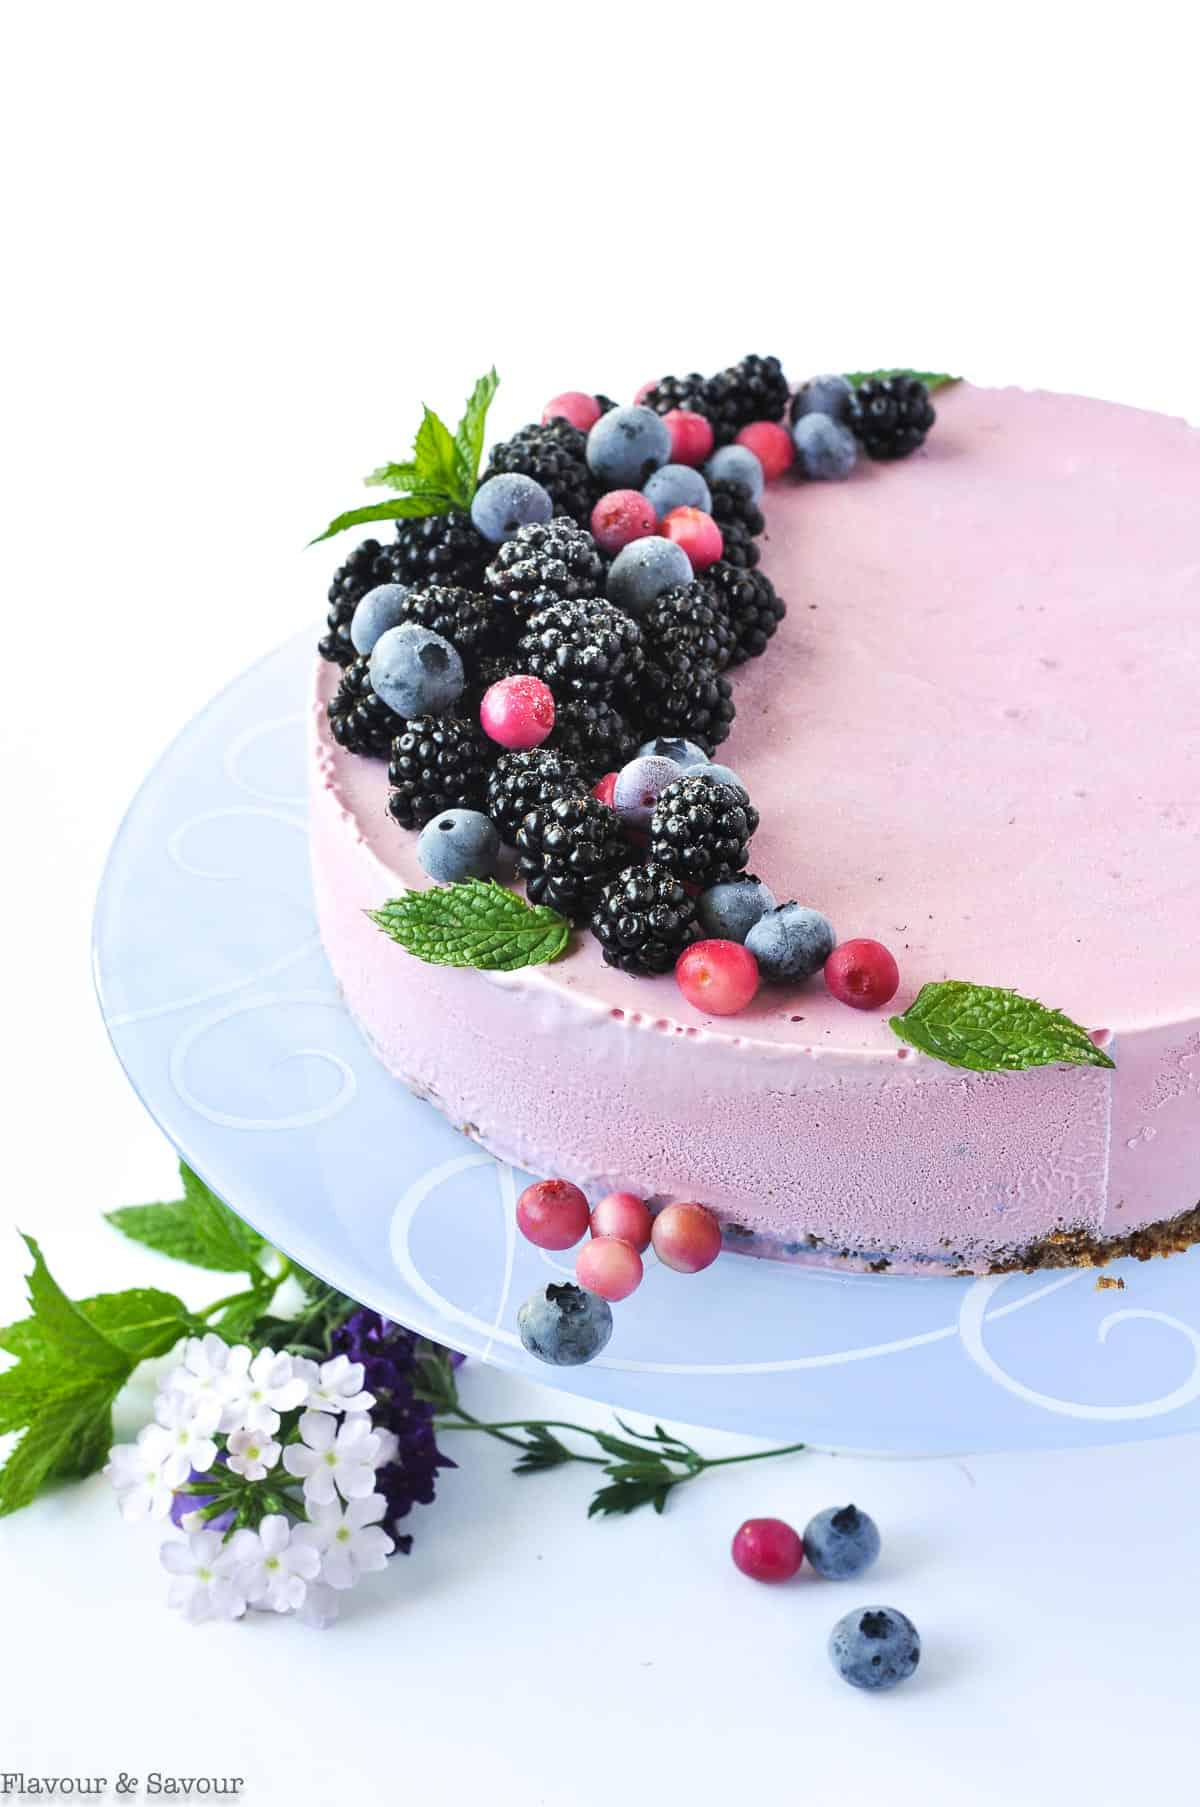 Blackberry Ice Cream Cheesecake decorated with berries on a pale blue plate.